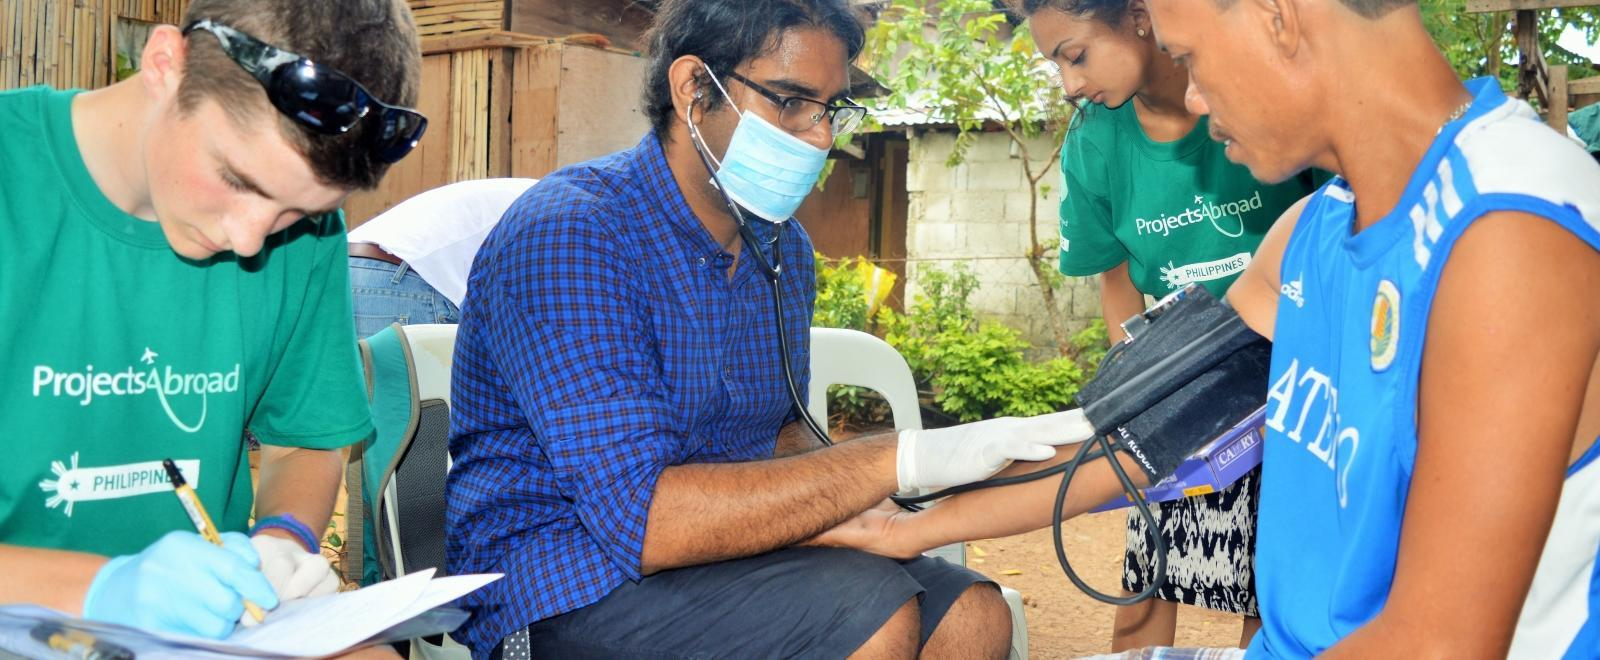 As part of the Projects Abroad Public Health Internship for teenagers in the Philippines, student assists a local doctor during a medical outreach.